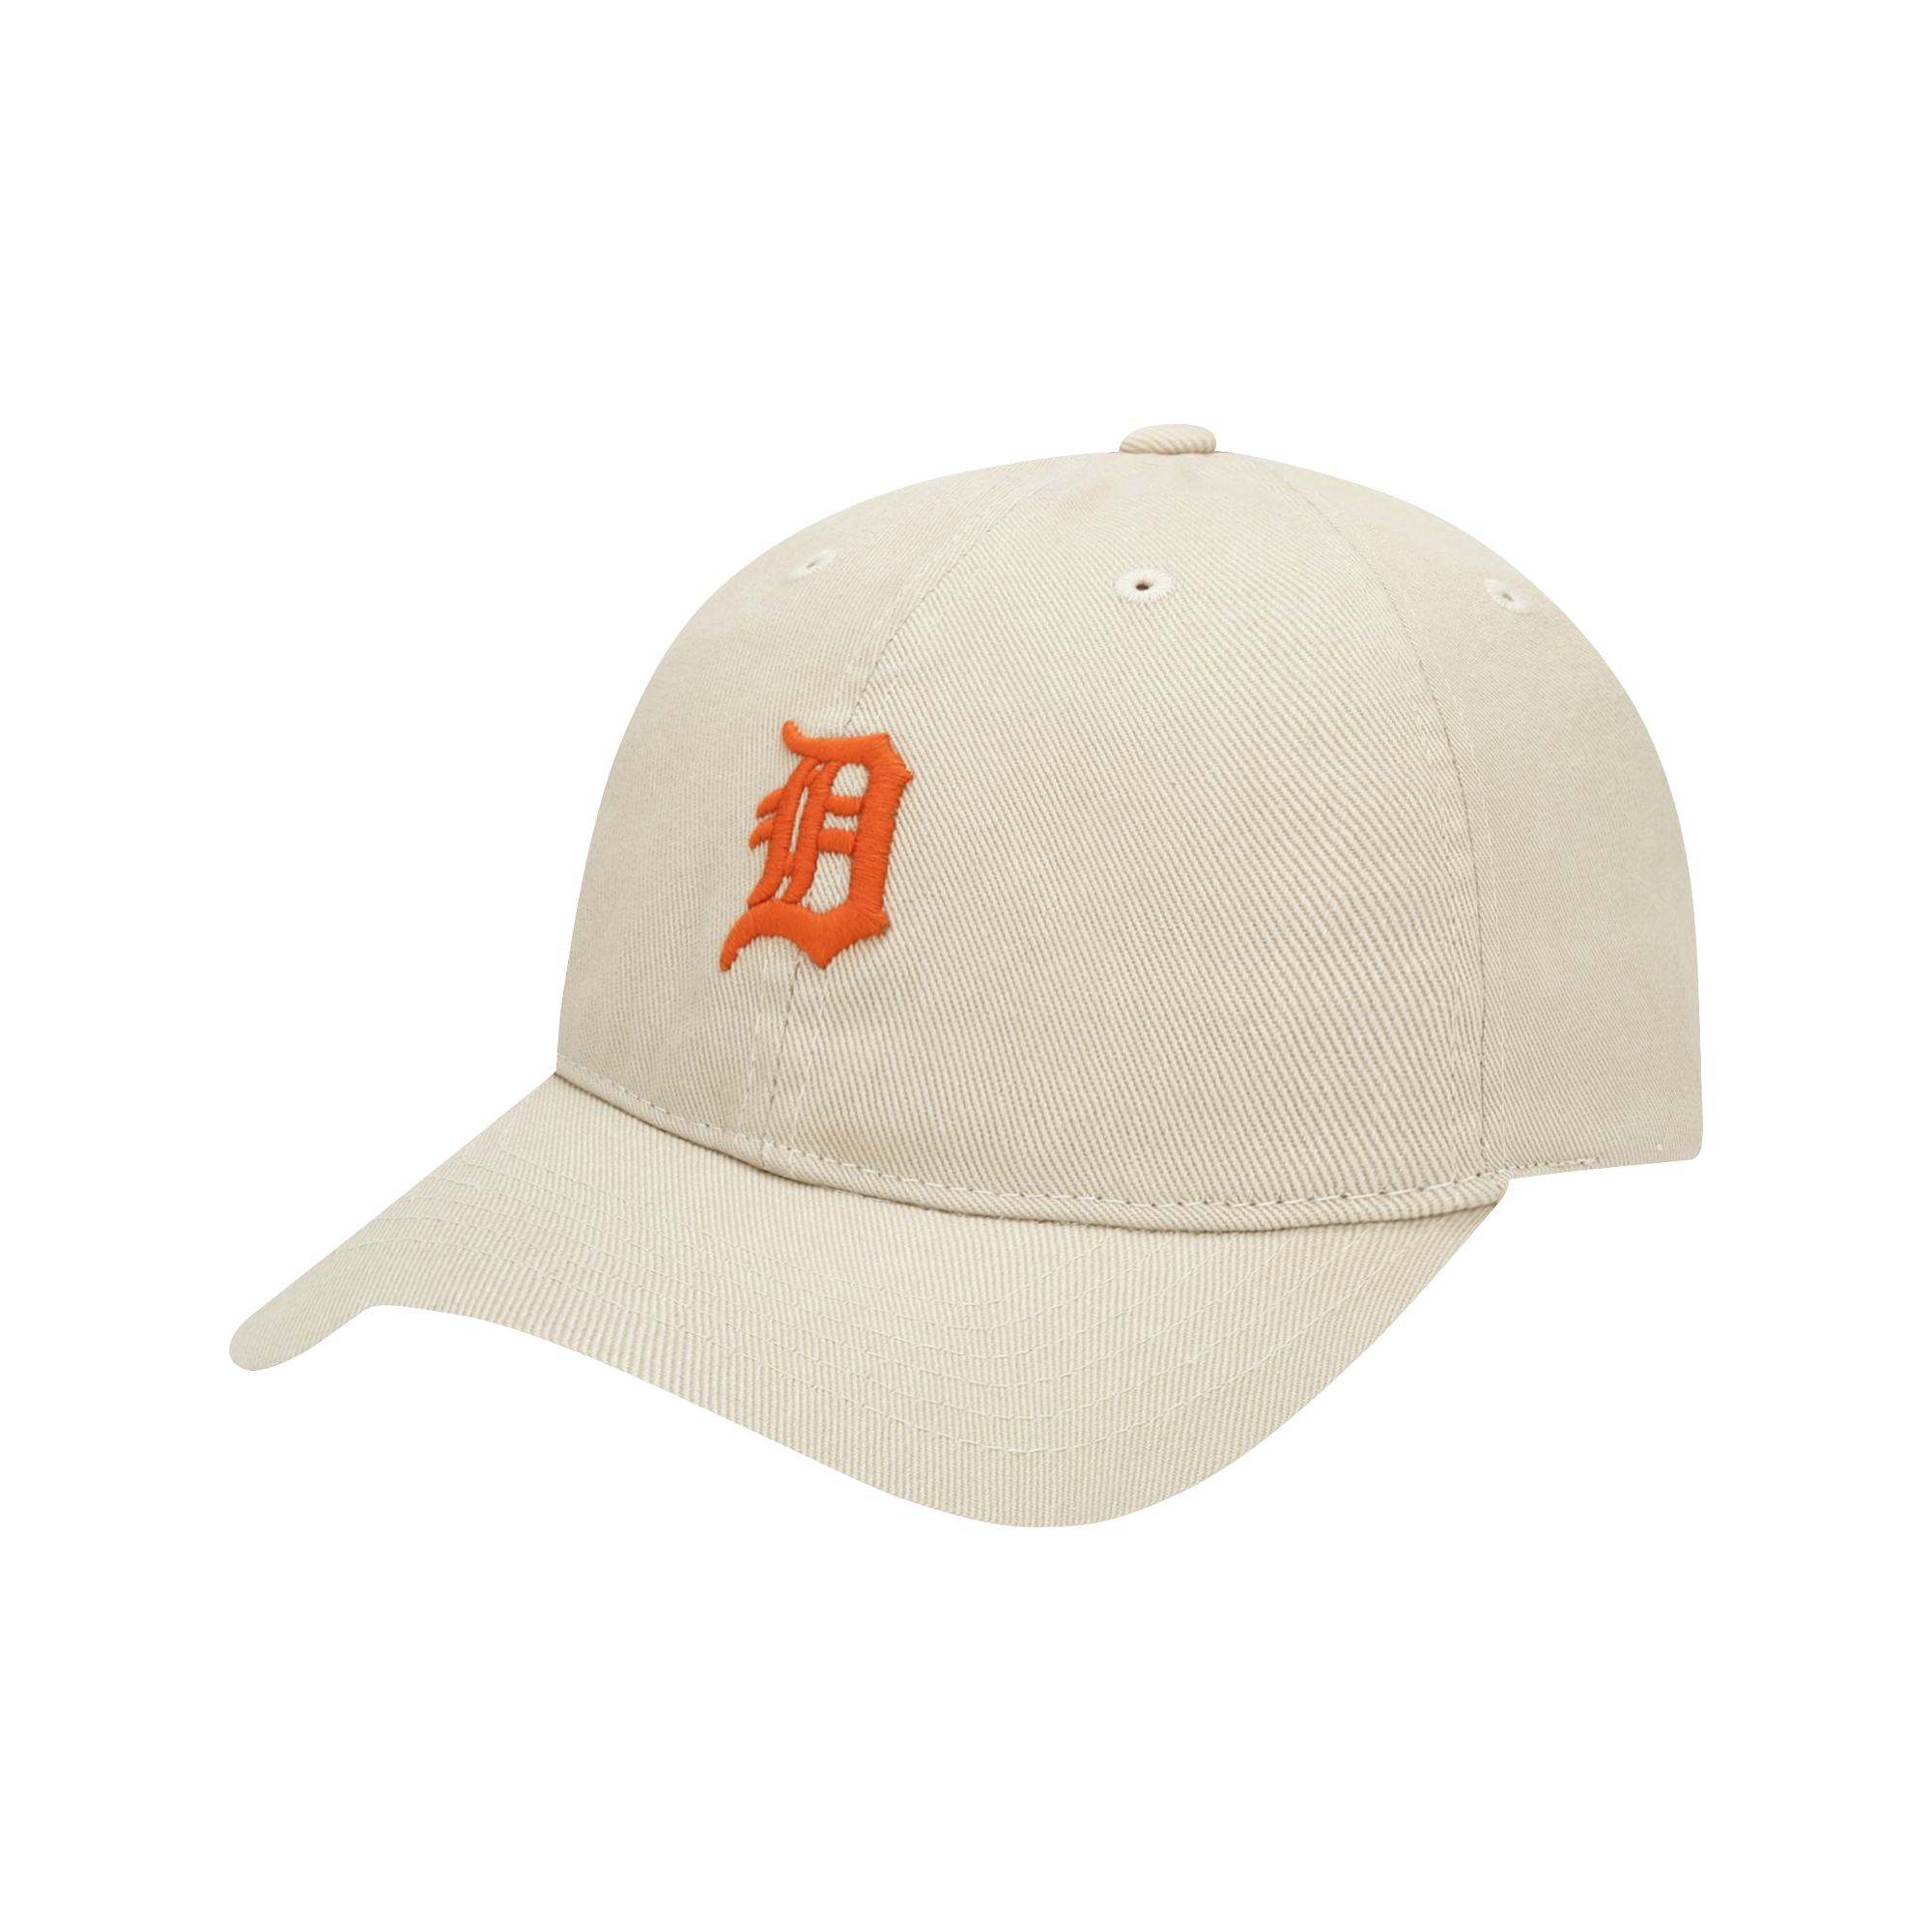 DETROIT TIGERS SLUGGER BALL CAP